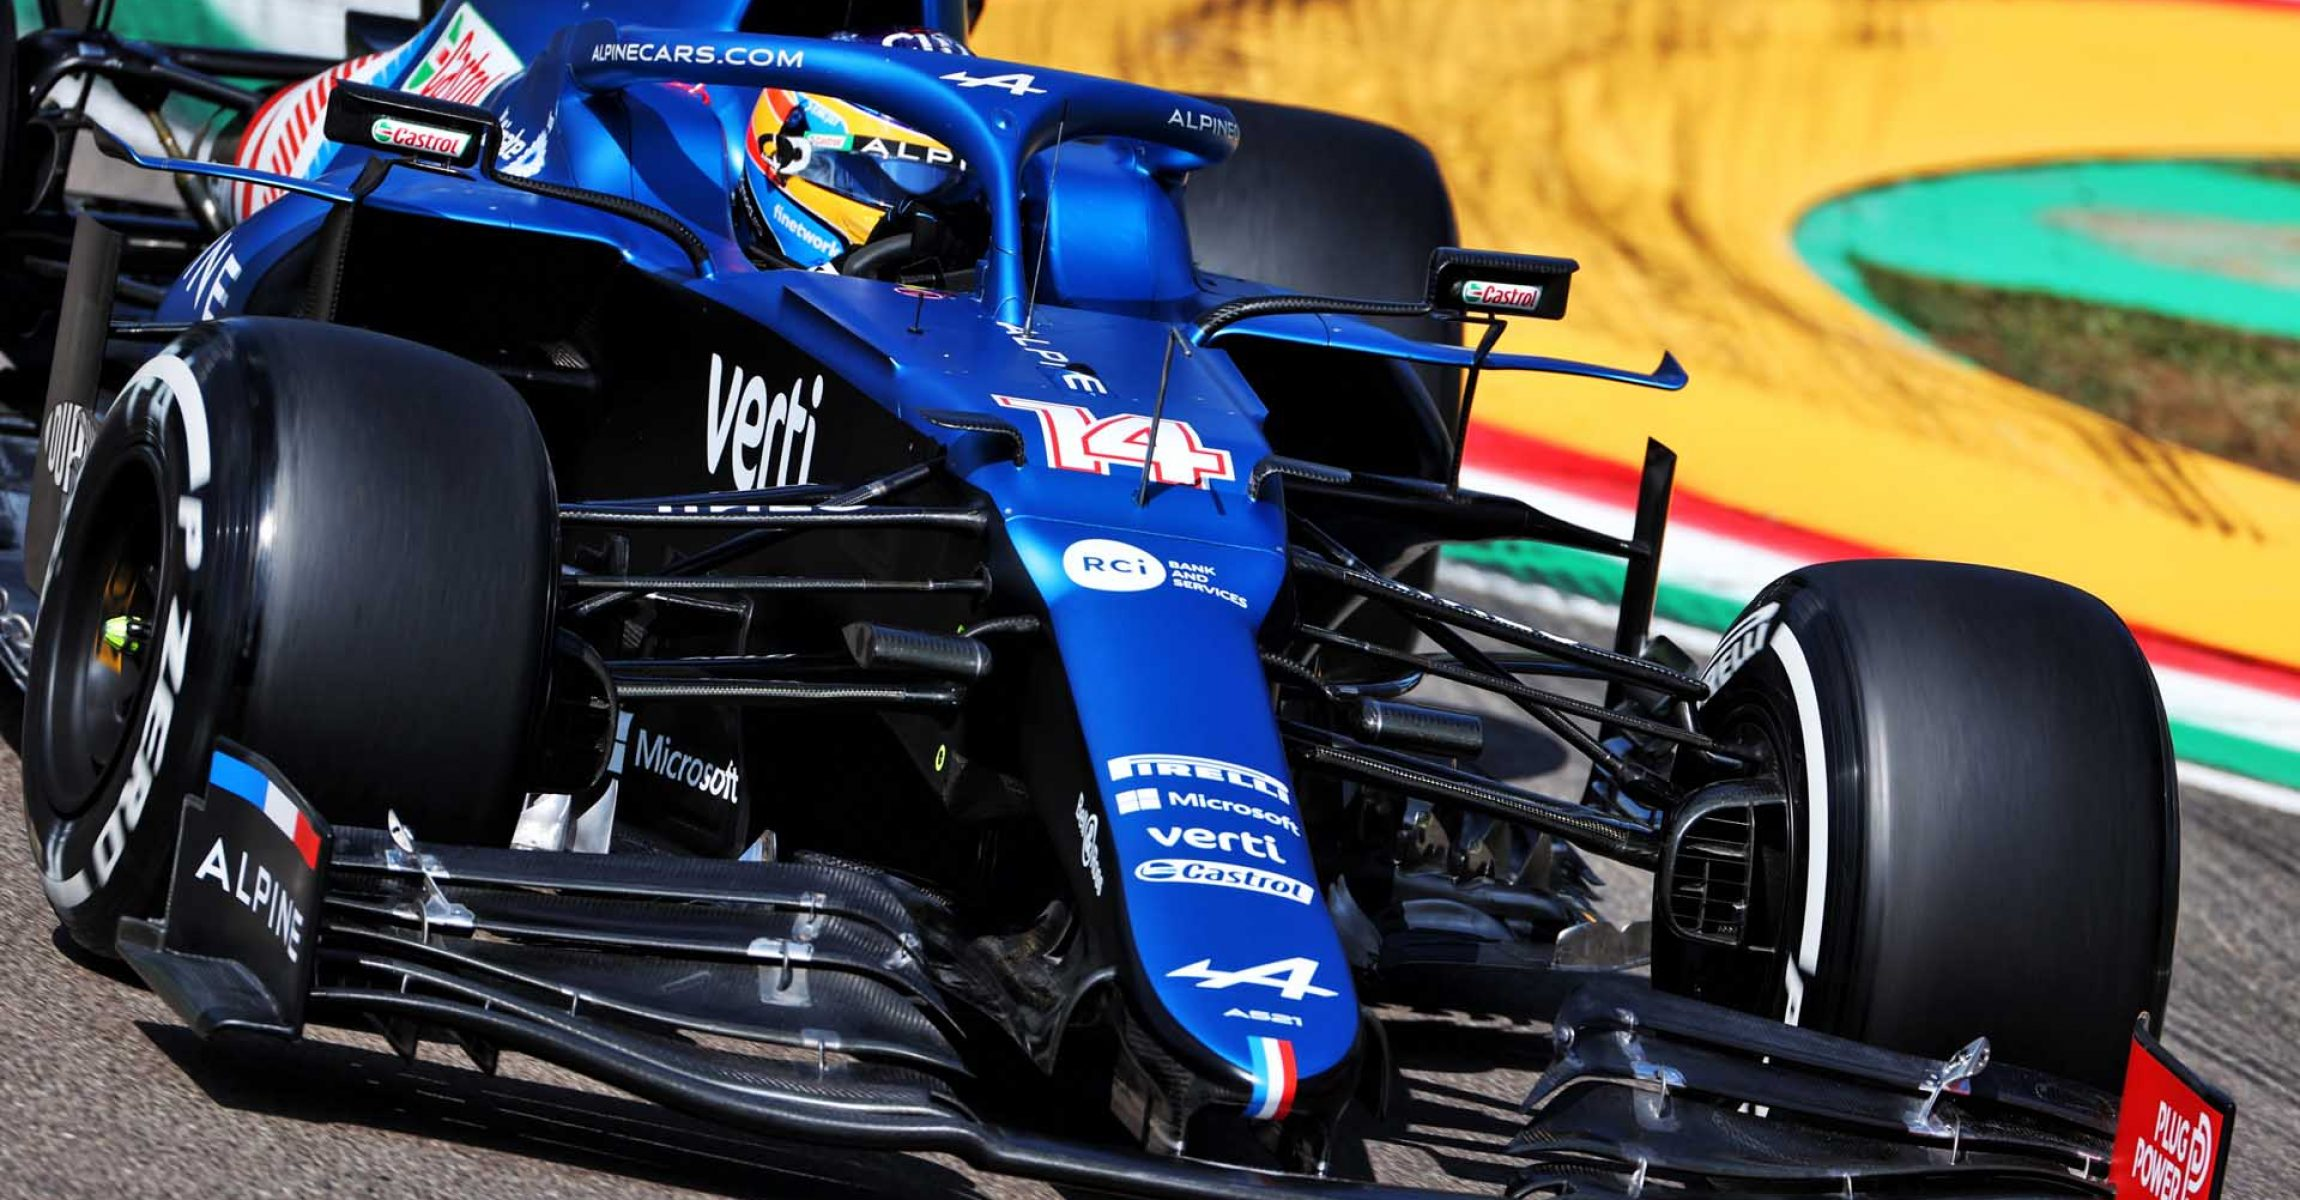 Fernando Alonso (ESP) Alpine F1 Team A521. Emilia Romagna Grand Prix, Friday 16th April 2021. Imola, Italy.